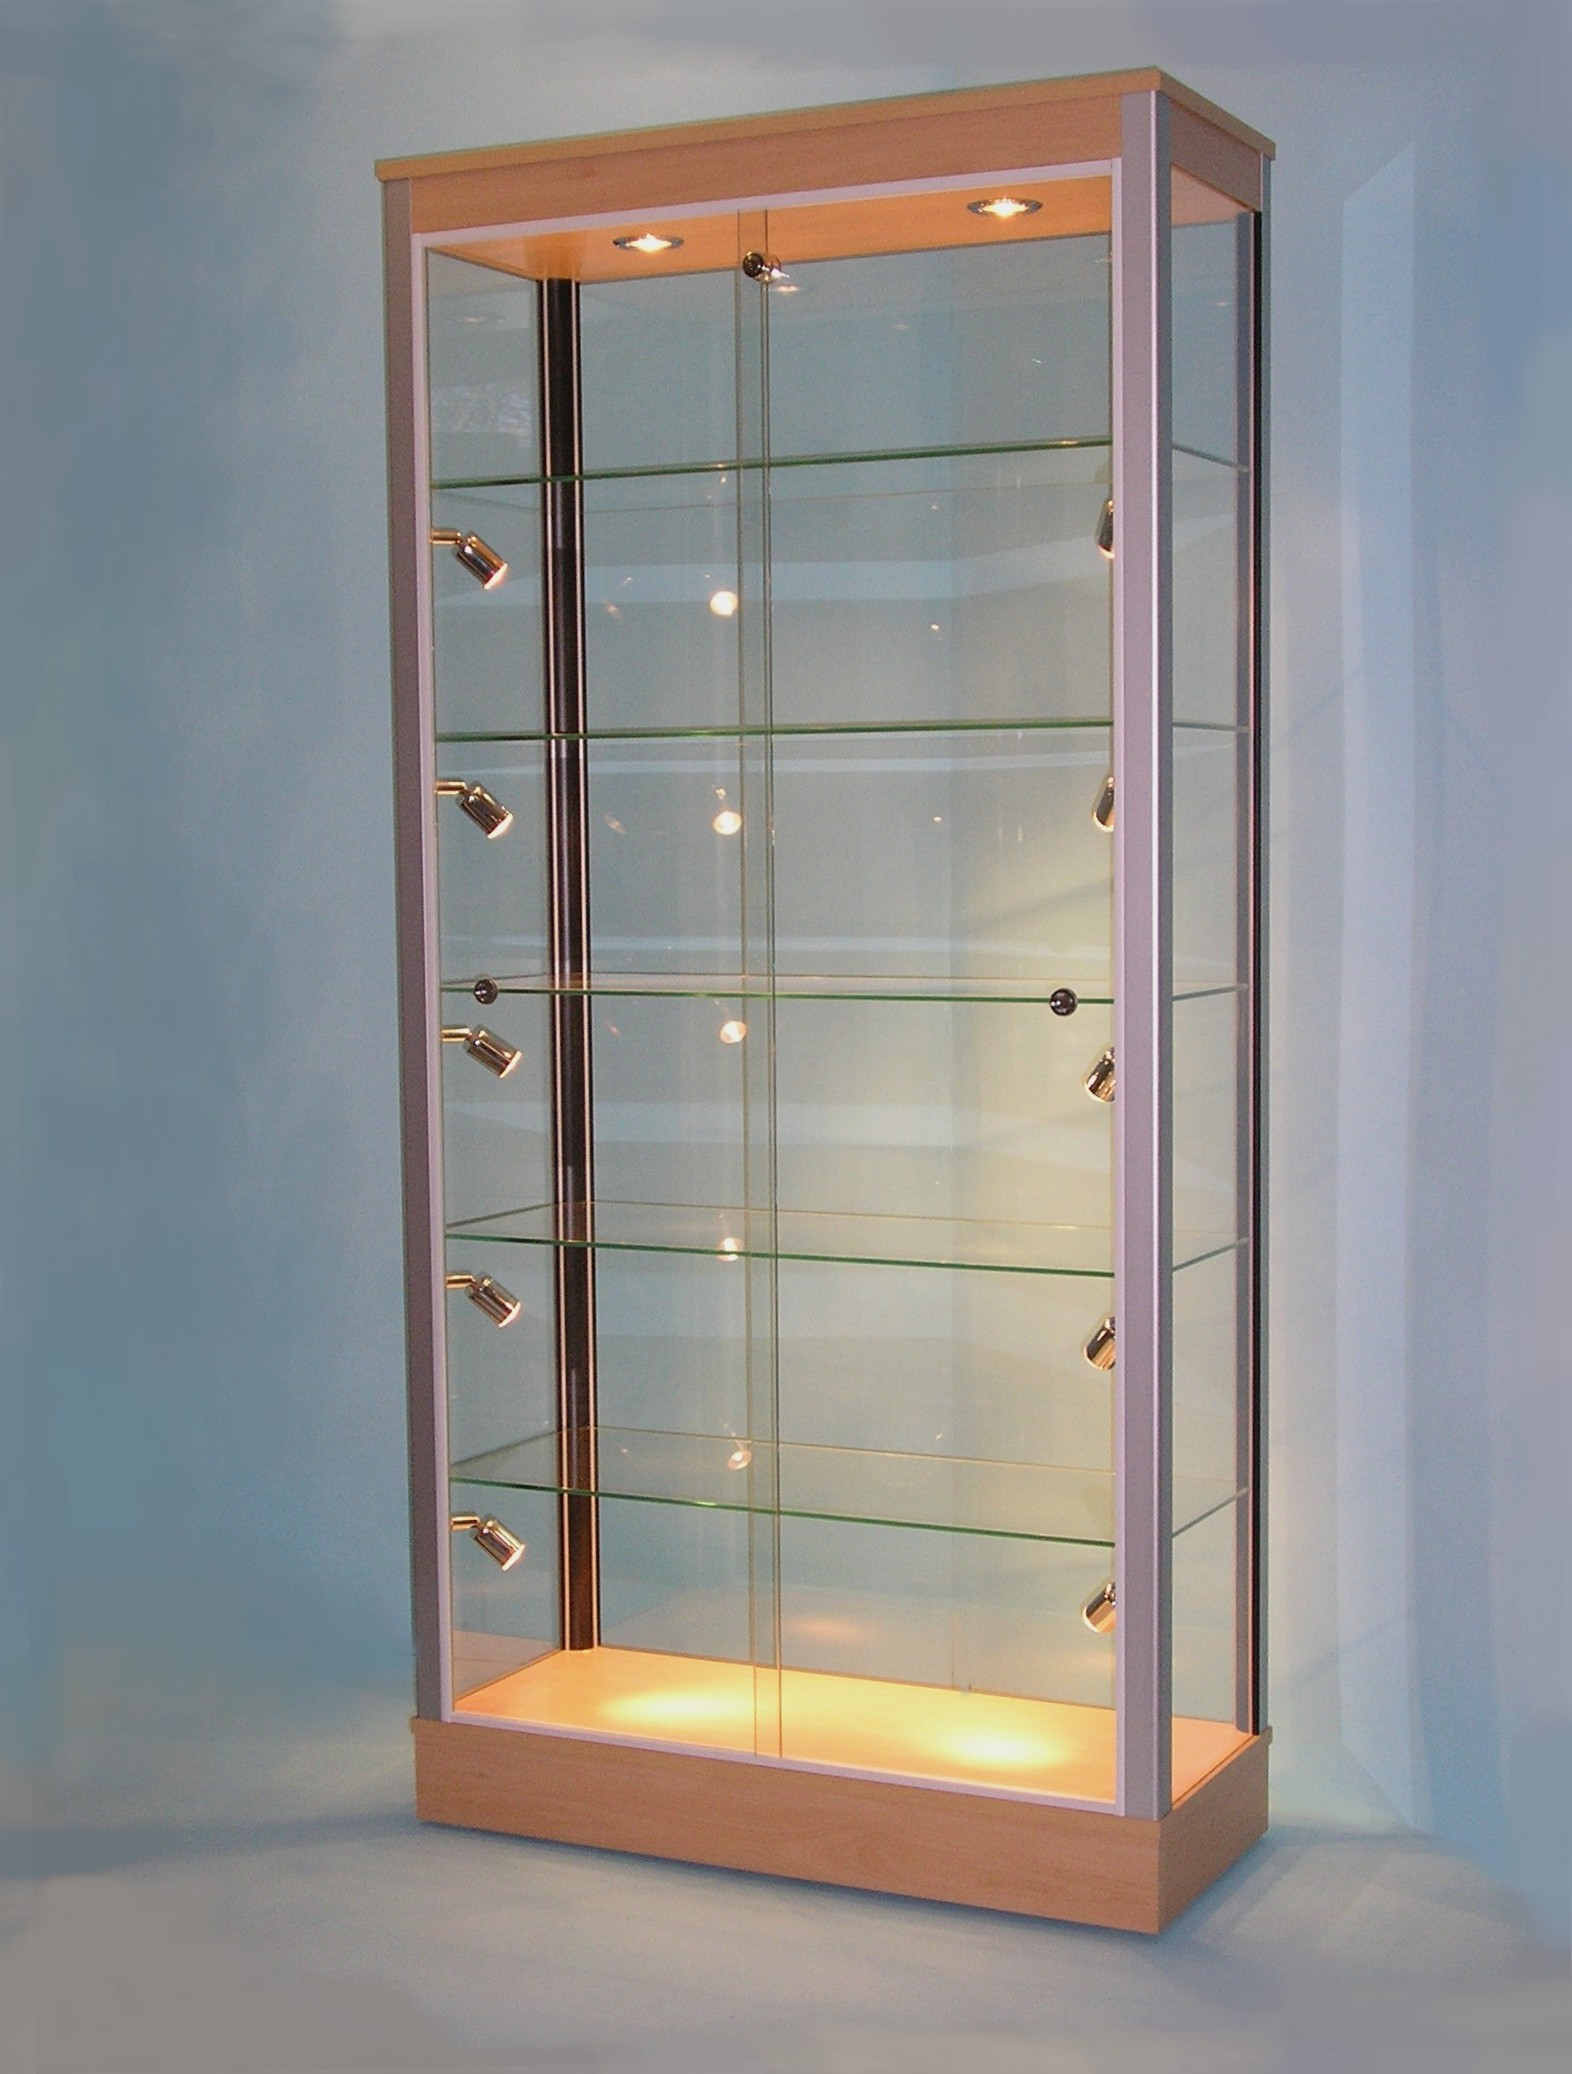 Designex Cabinets D11 beech corner lights glass display cabinet